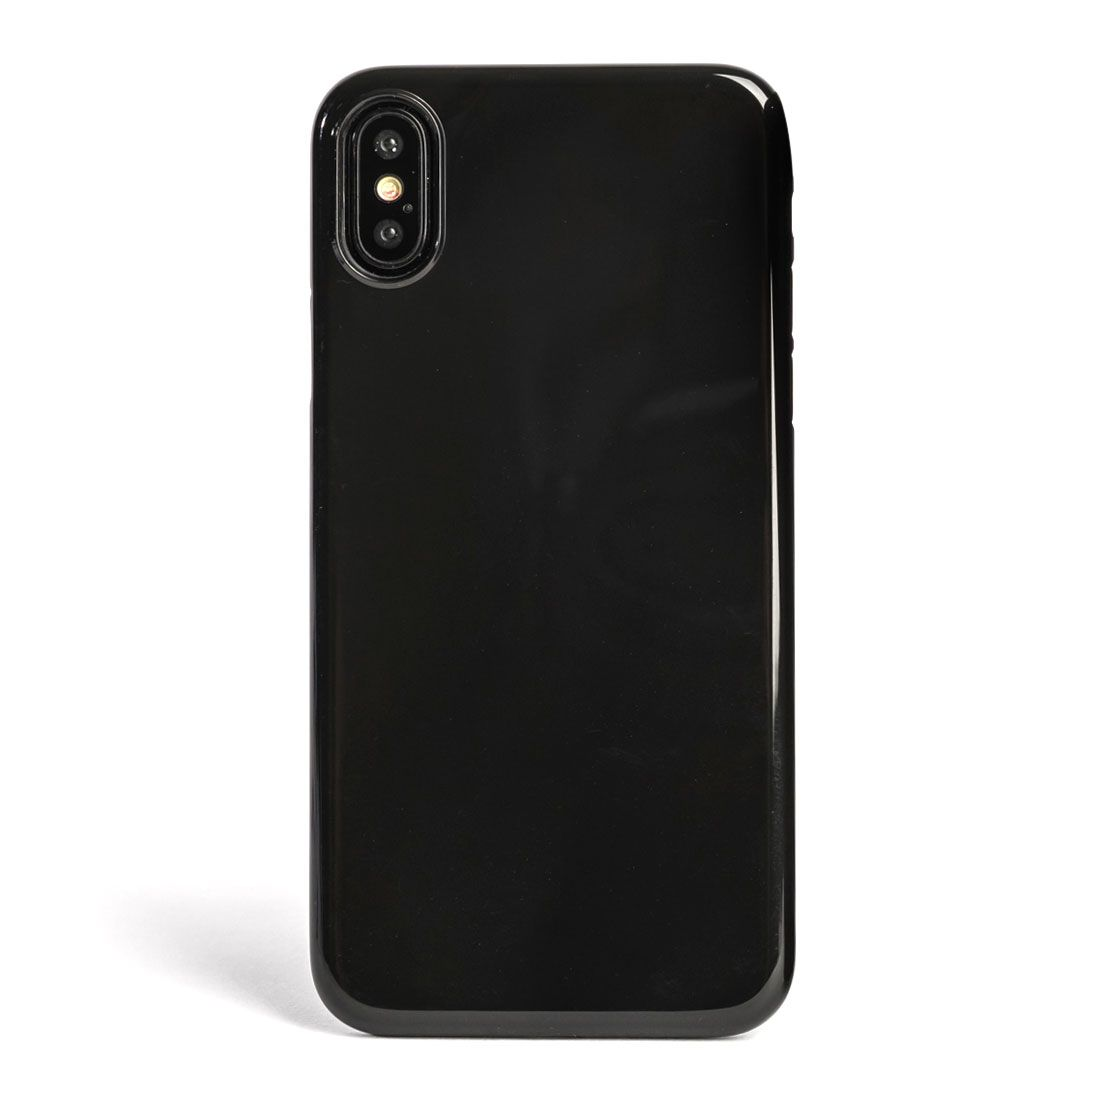 Peel Super Thin iPhone X Case